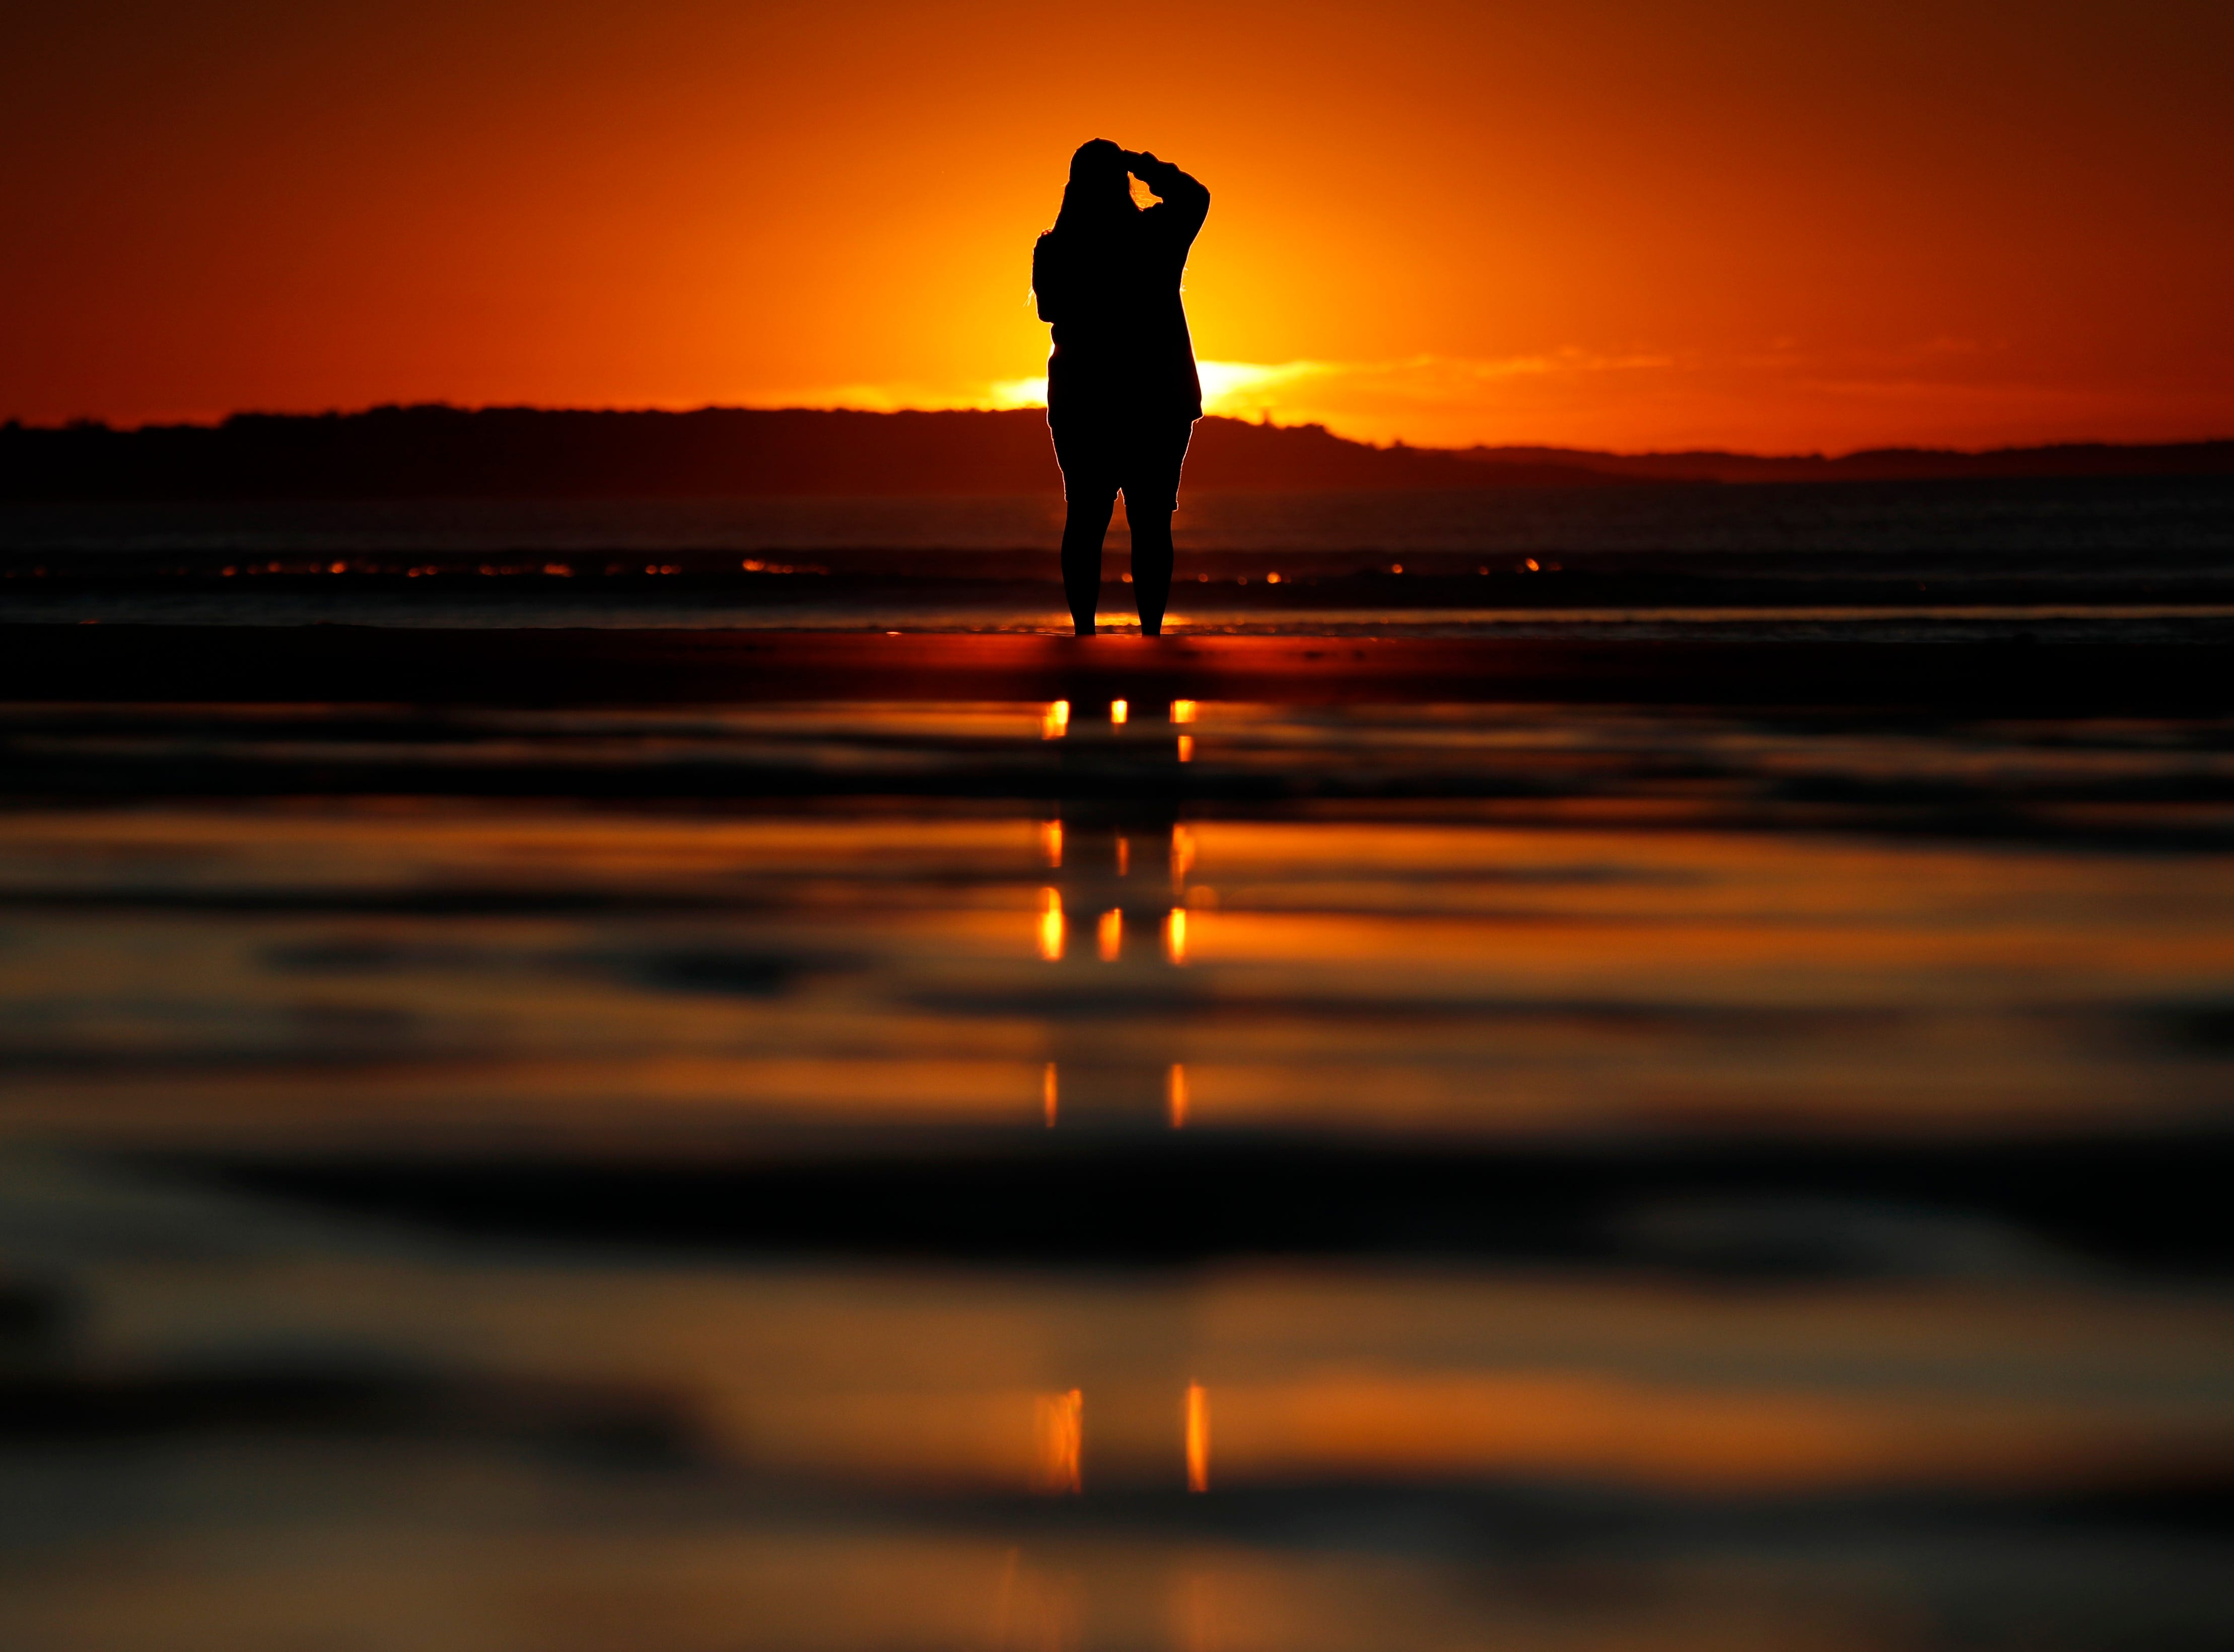 July 12, 2018: Consuello Jessop, of Providence, R.I., photographs the sunrise at Ocean Park in Old Orchard Beach, Maine.